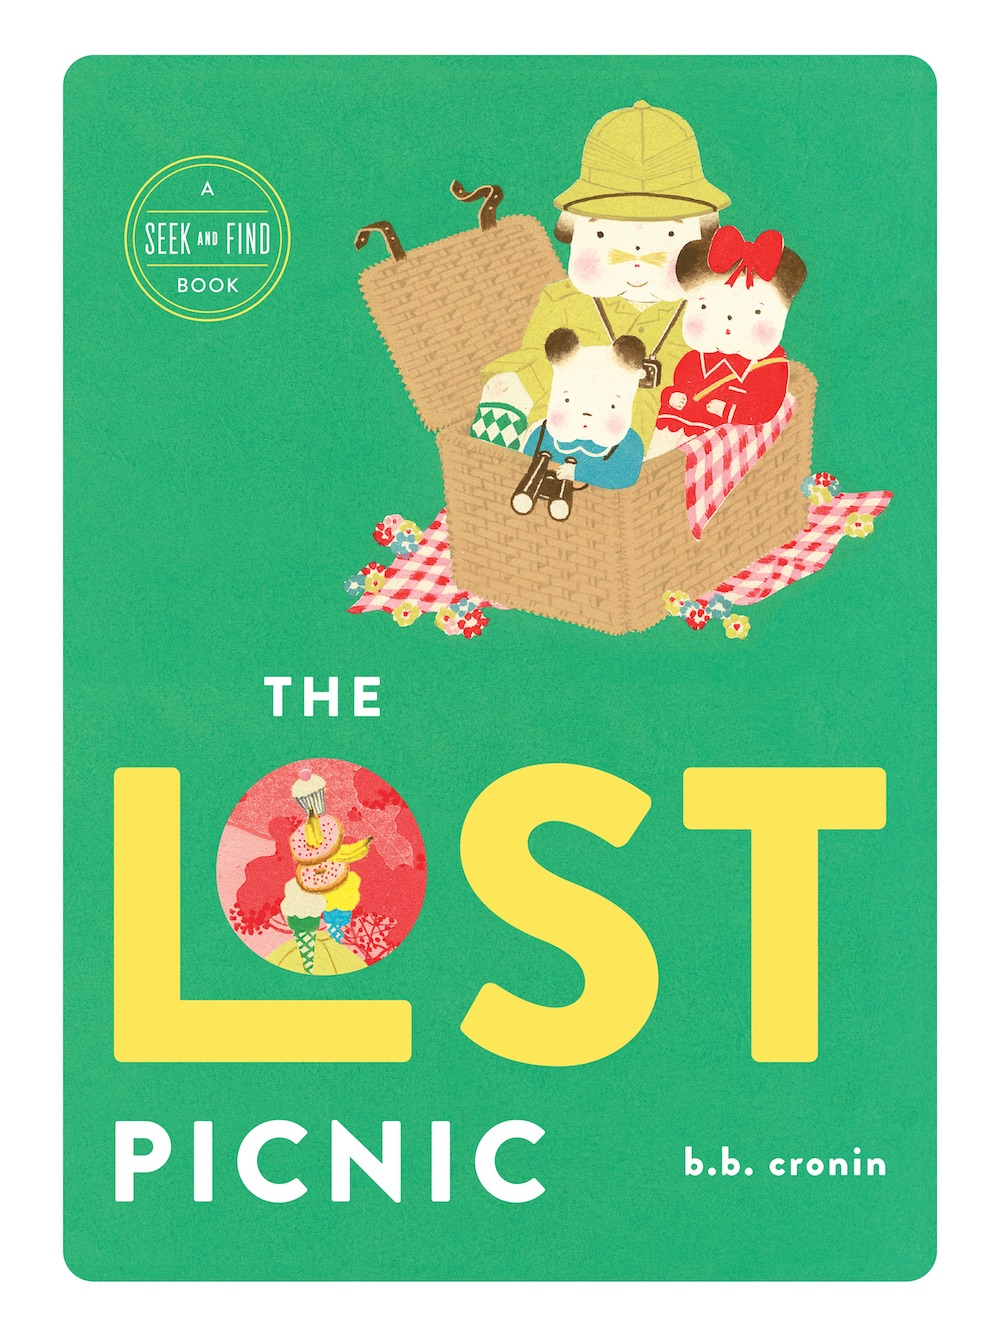 Gorgeous look-and-find books for kids: The Lost Picnic by B. B. Cronin